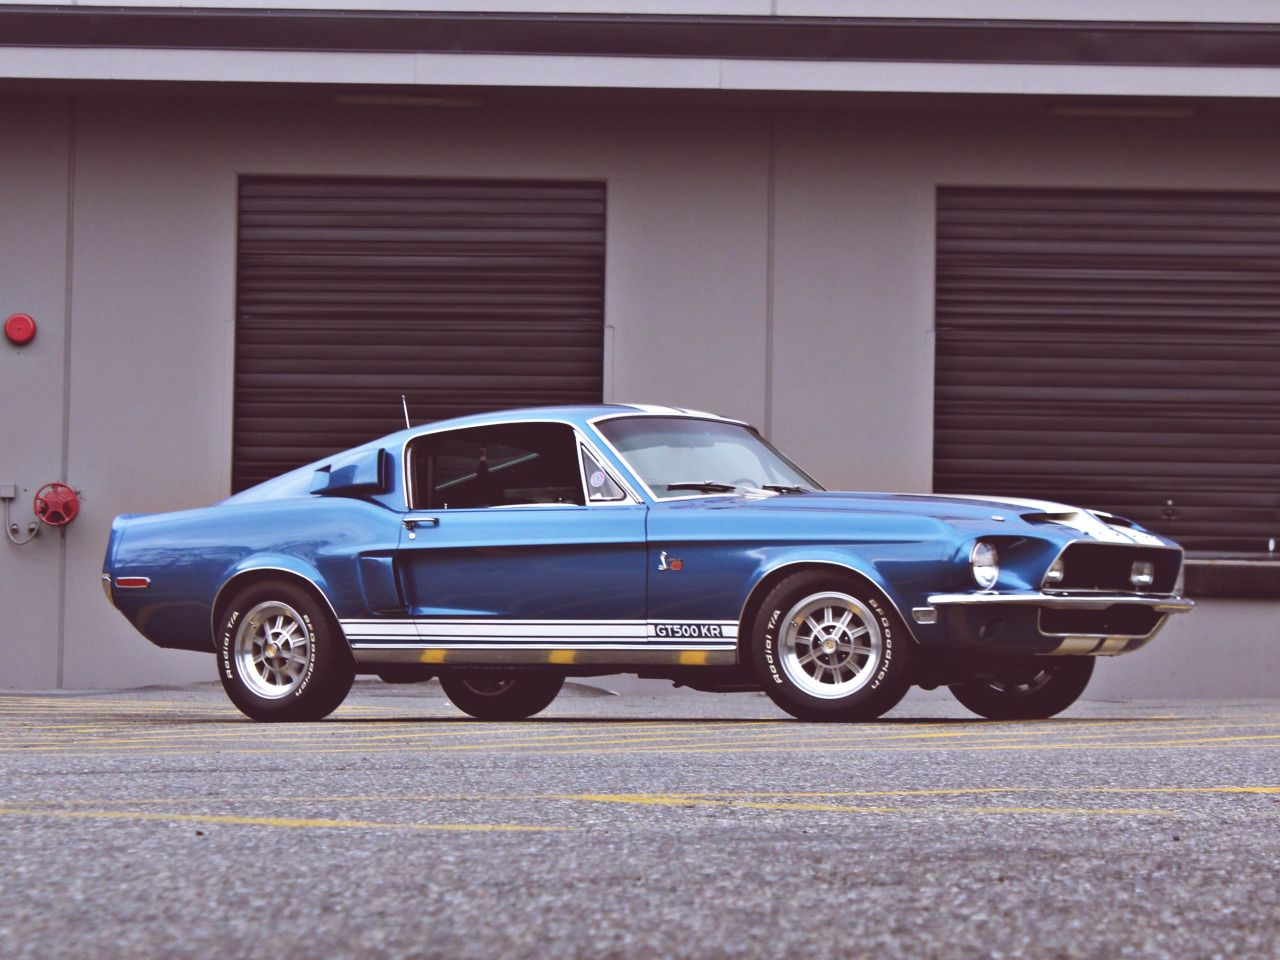 Just Another Pair Of Eyes Theoldiebutgoodie 1968 Shelby Mustang Gt500kr Shelby Mustang Gt500 Mustang Shelby 1968 Ford Mustang Fastback